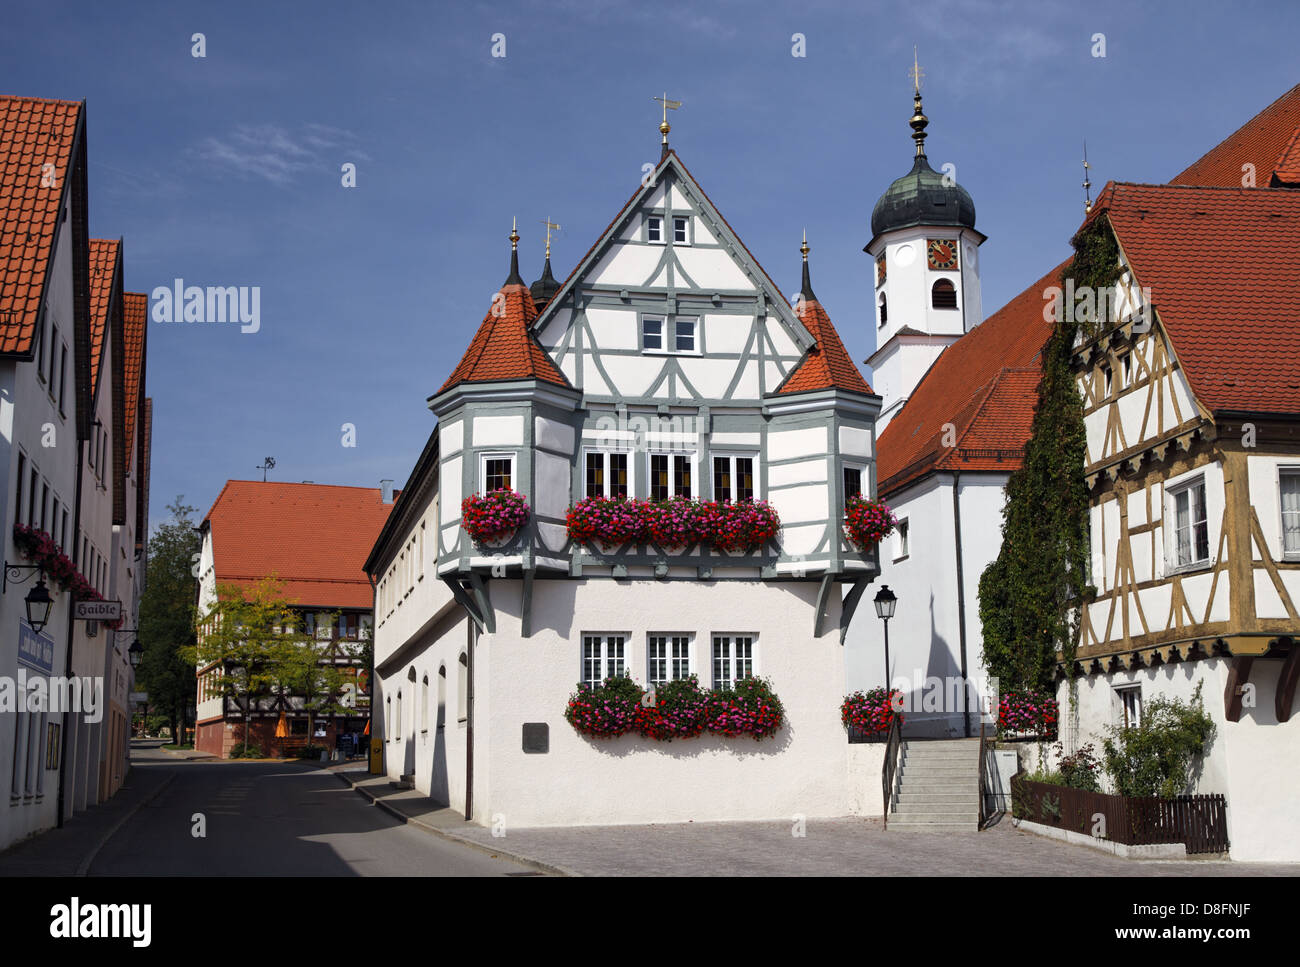 germany baden wuerttemberg hayingen city hall half timbered stock photo royalty free image. Black Bedroom Furniture Sets. Home Design Ideas